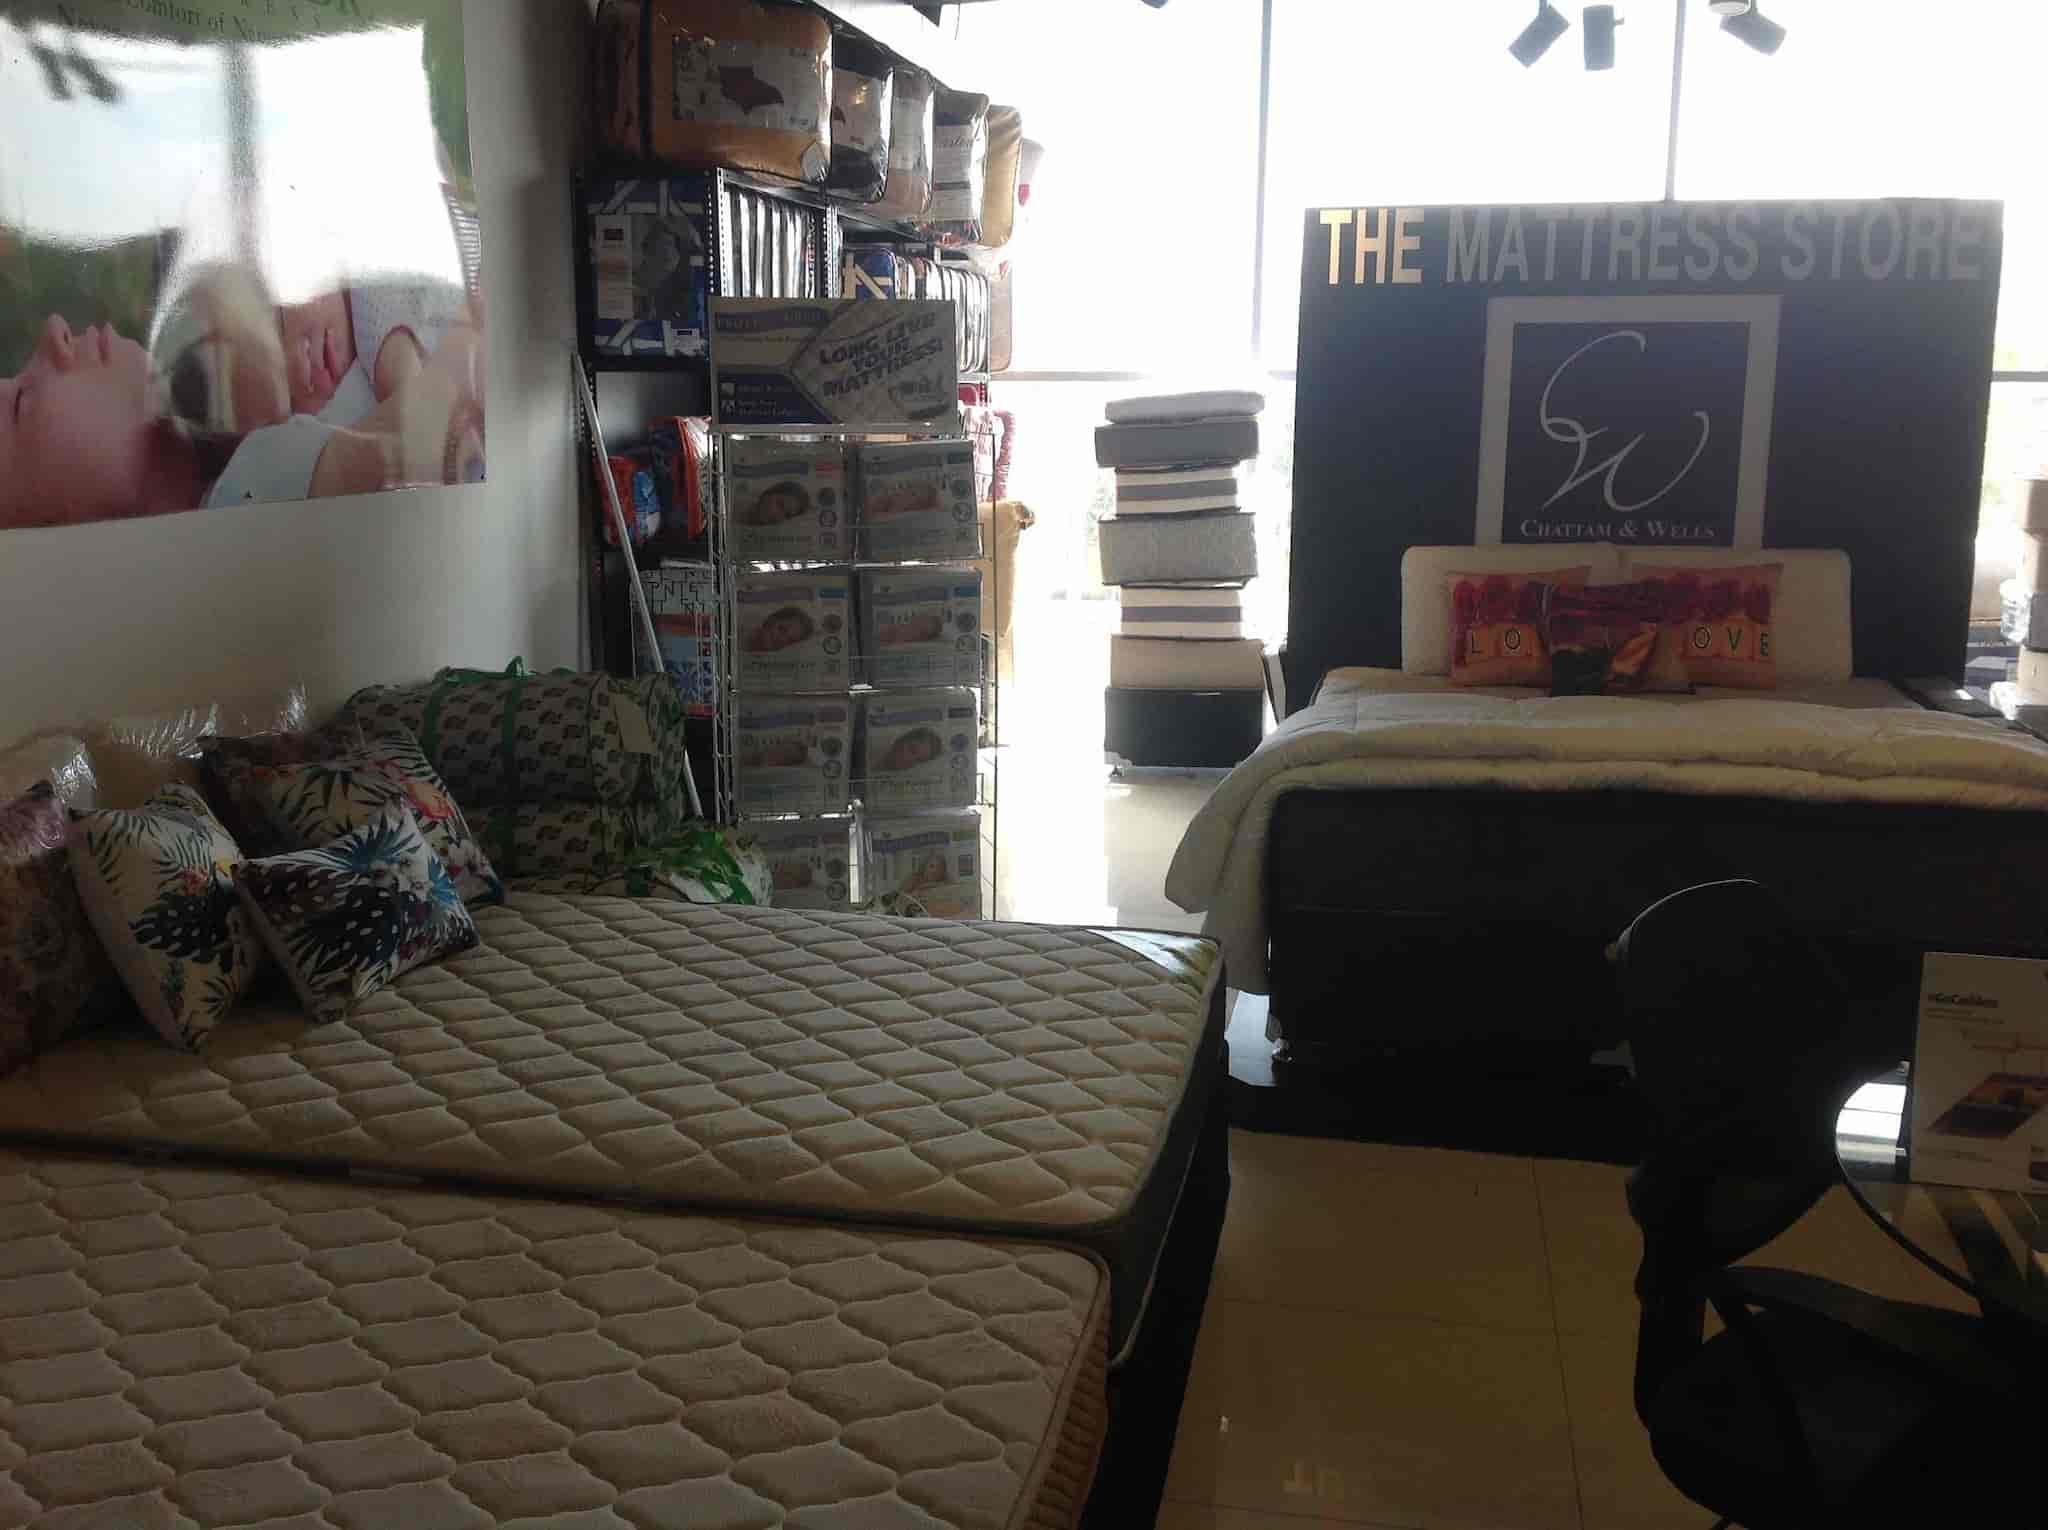 than now store floor to occupies sales percentage shows square first your foot how img less of space study the finished double case mattress